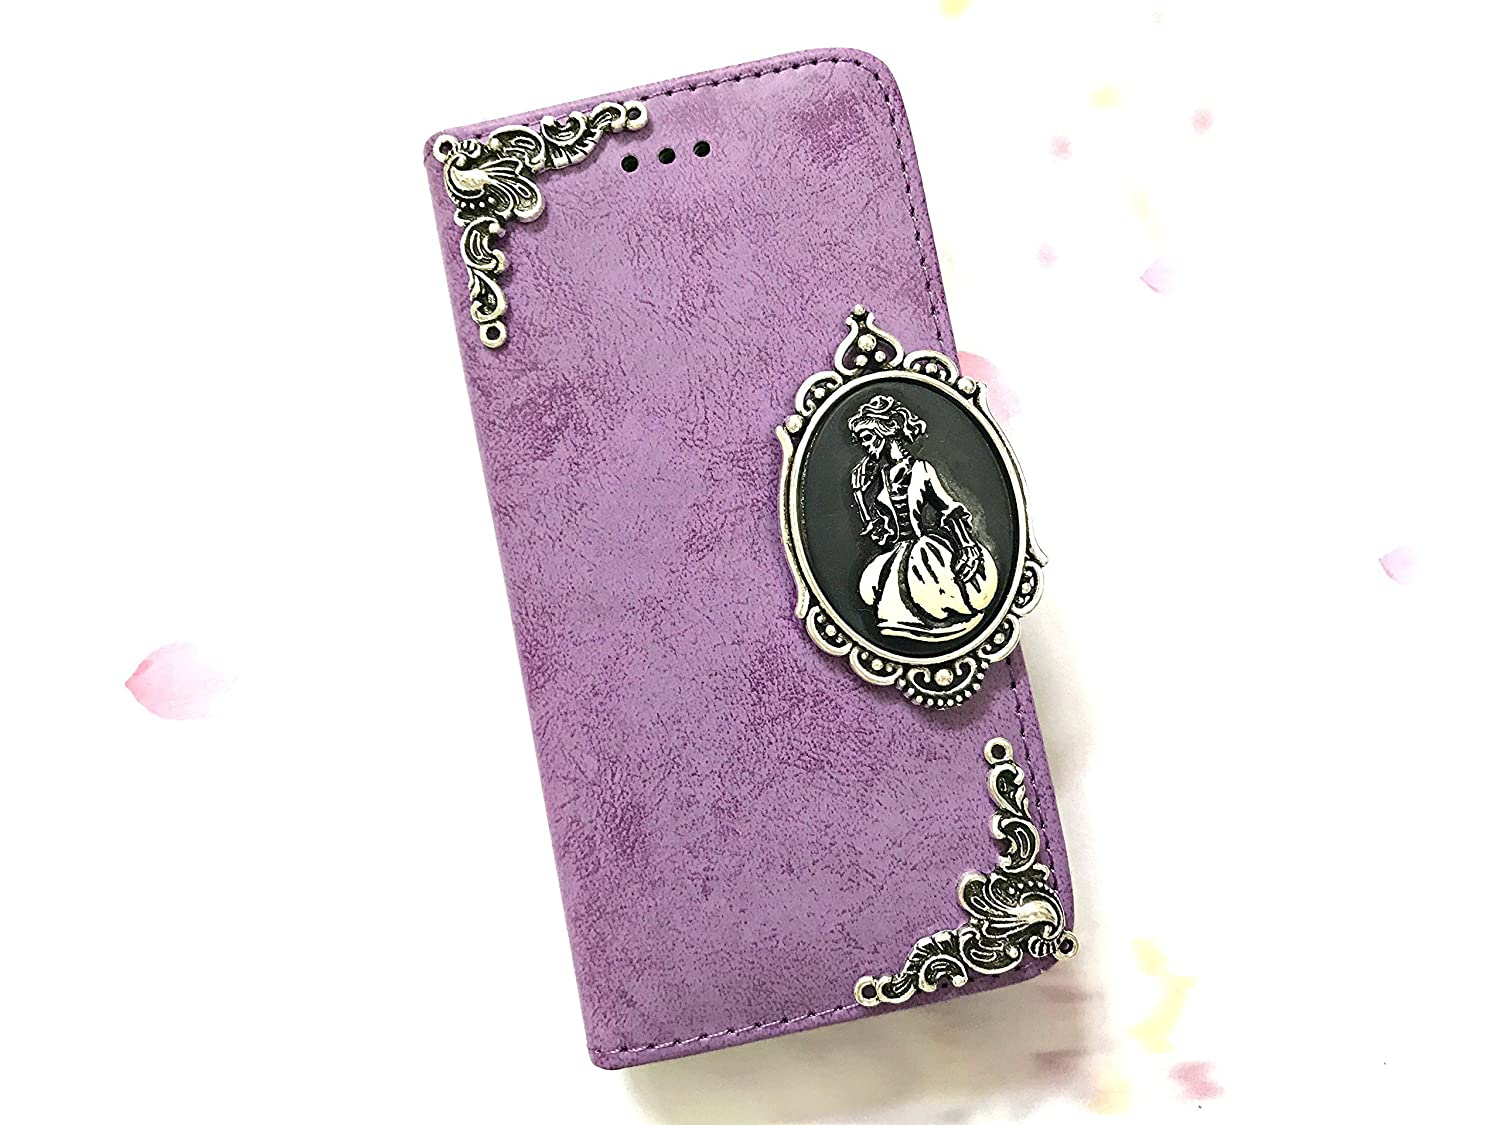 Skull lady phone removable leather wallet case, handmade phone wallet cover for iPhone X 6 6s 7 8 Plus Samsung Galaxy S8 S9 Plus S7 Edge S6 Edge Note 8 MN0620